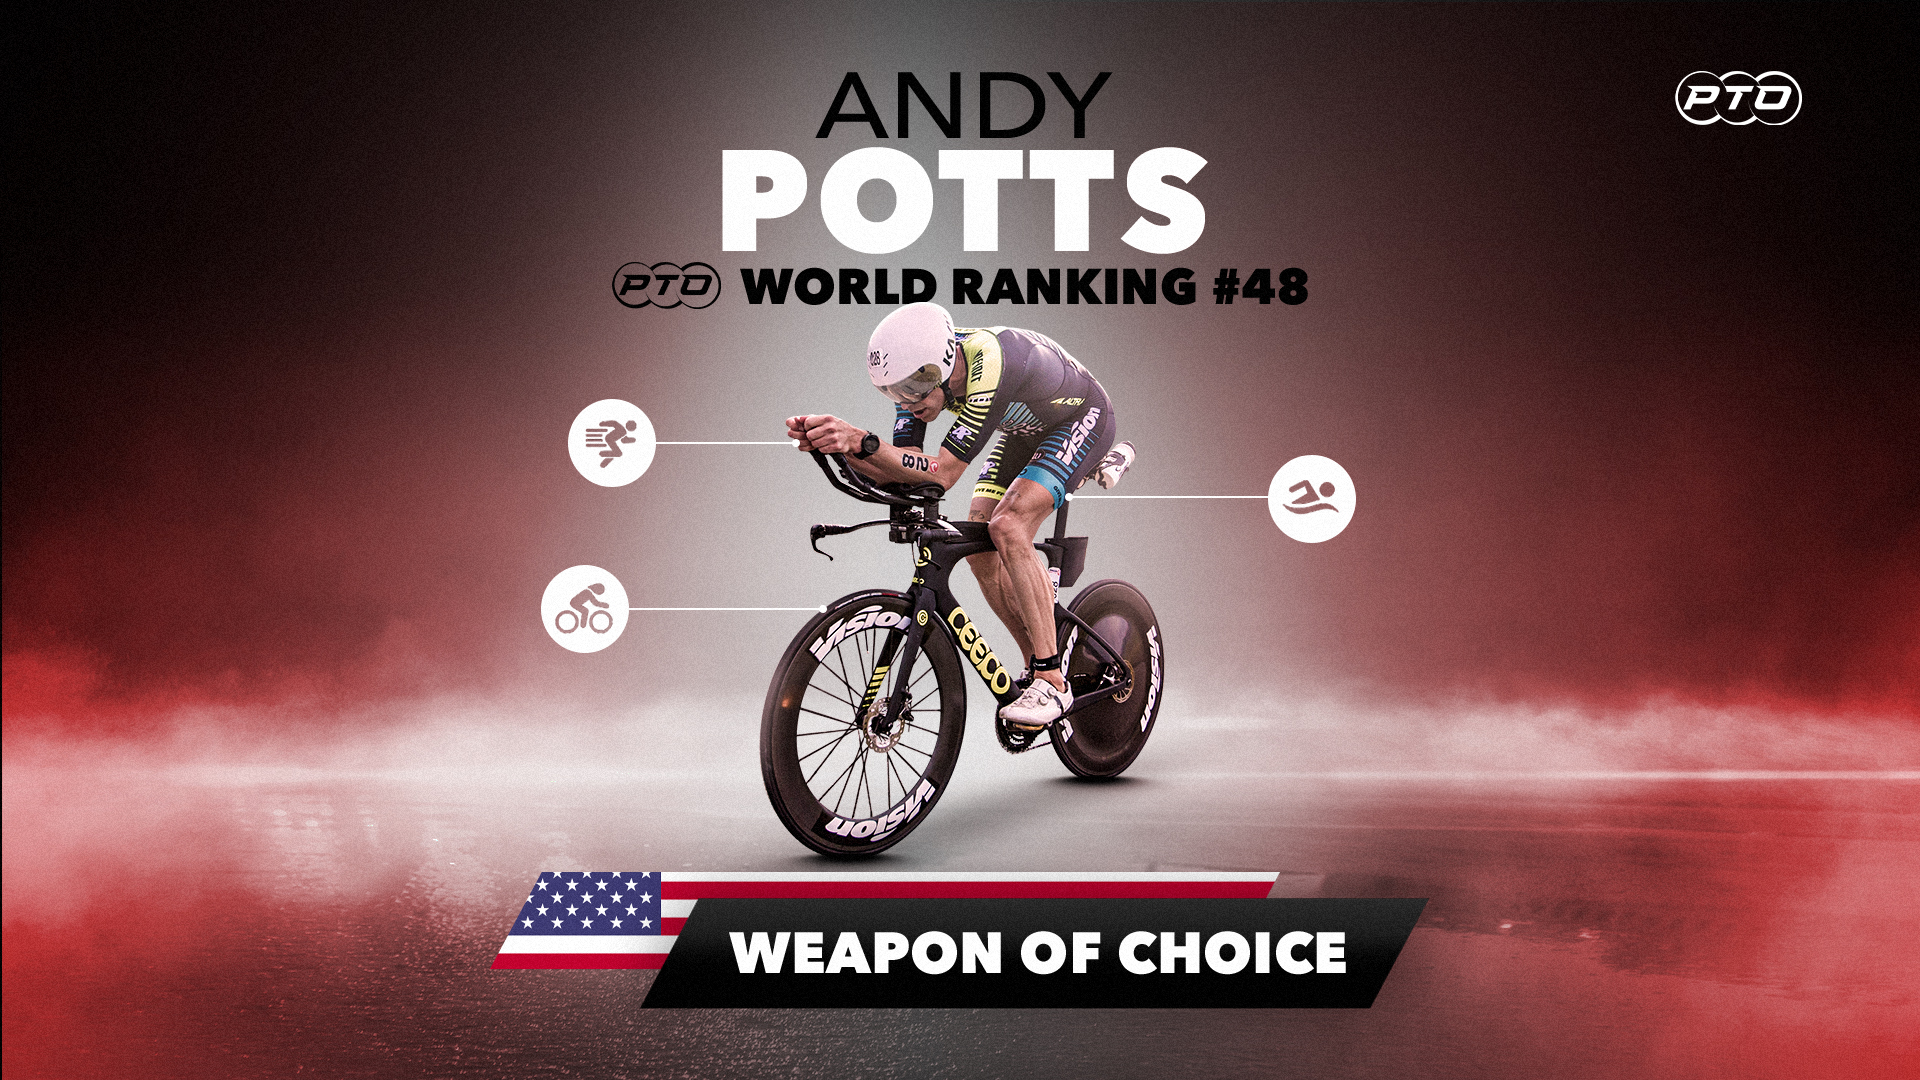 Weapon of Choice || Andy Potts